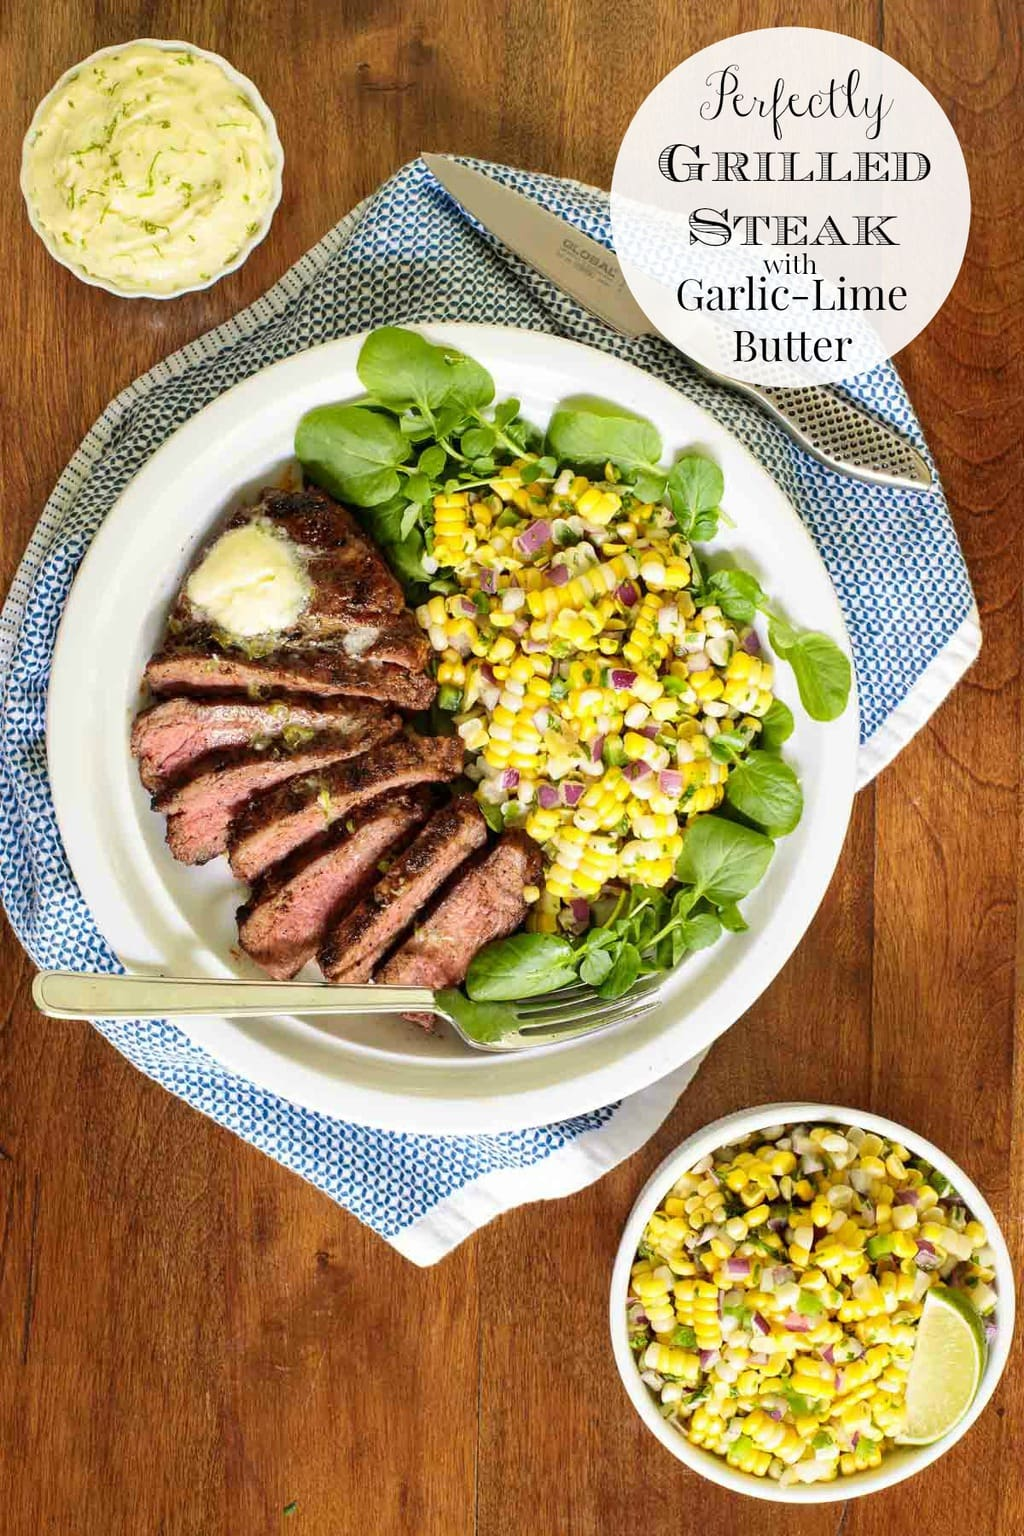 With a delicious Mexican-inspired dry rub, melting garlic lime butter and a few easy grilling tricks this recipe for perfectly grilled steak is sure to become a favorite! #perfectlygrilledsteak, #grilledsteak, #grillingsteaktricks, #howtogrillsteak